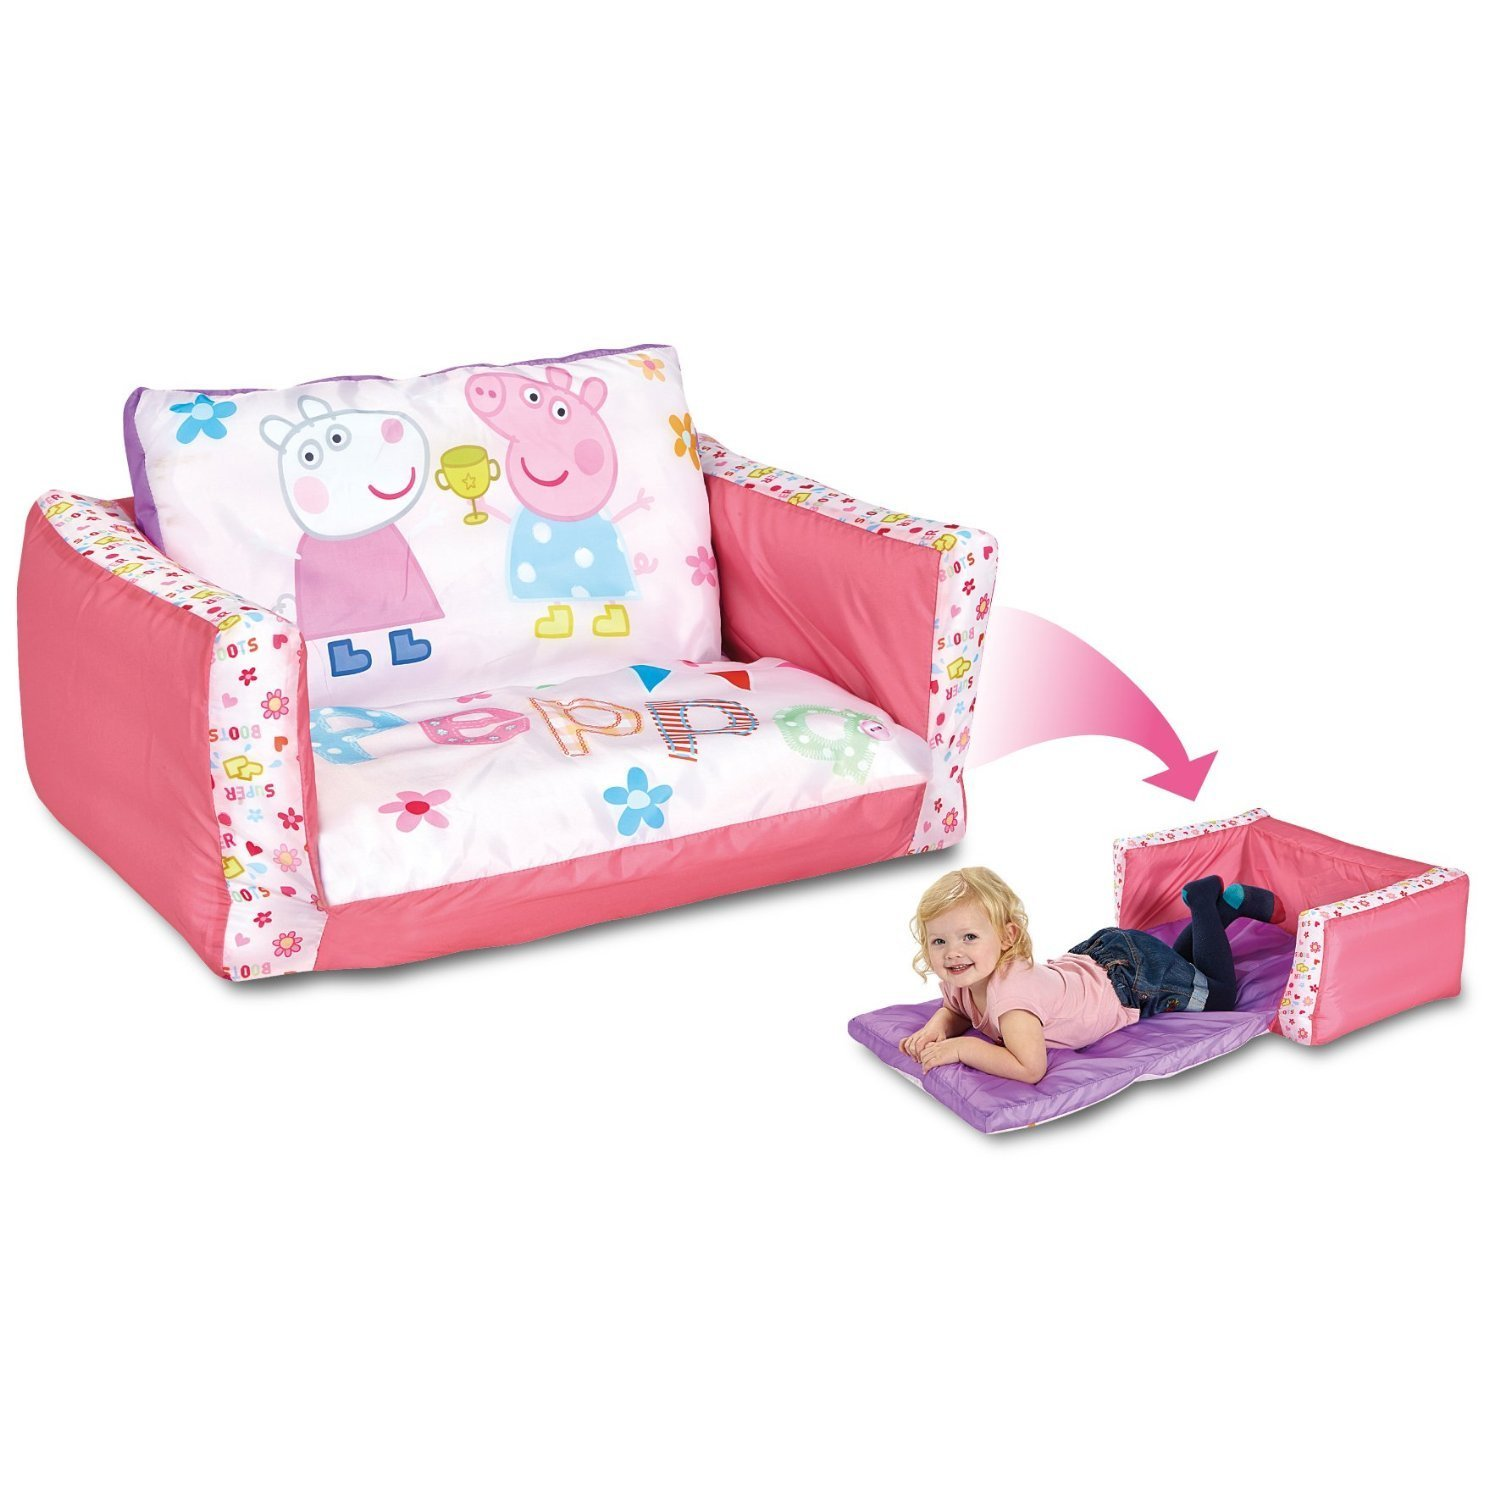 Peppa Pig - Flip Out Sofa And Chair For Kids - Folds Out To A Lounger:  Amazon.ca: Home & Kitchen